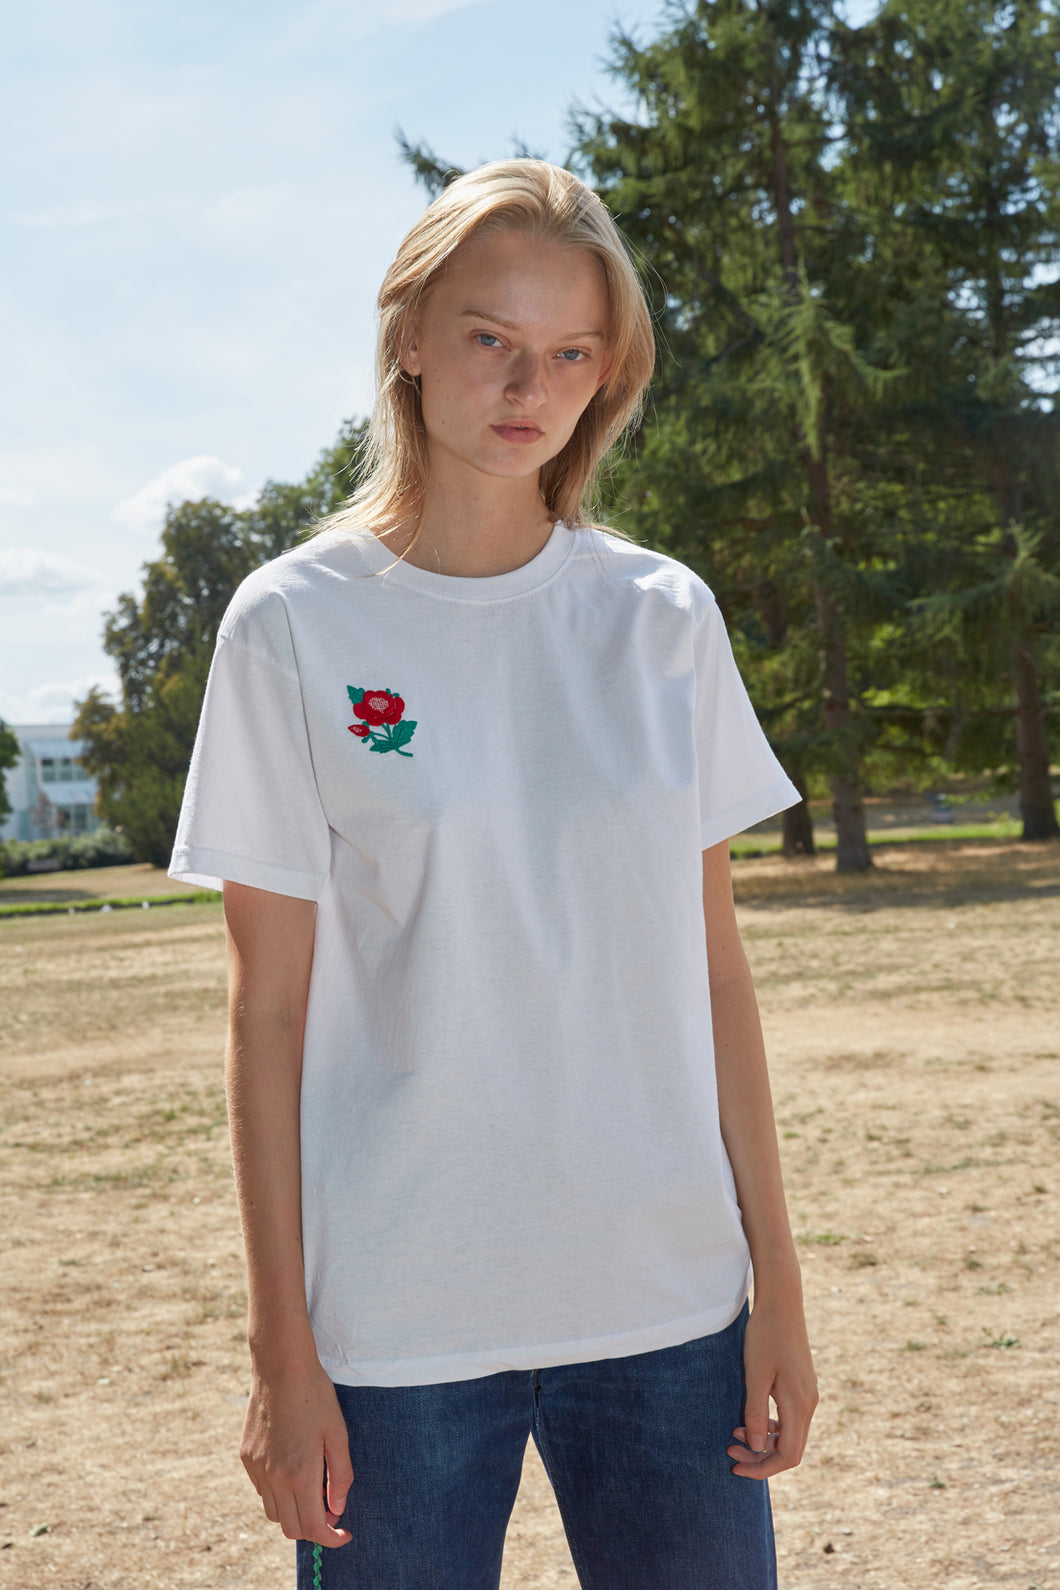 Embroidered Red Flower Patch White T-Shirt